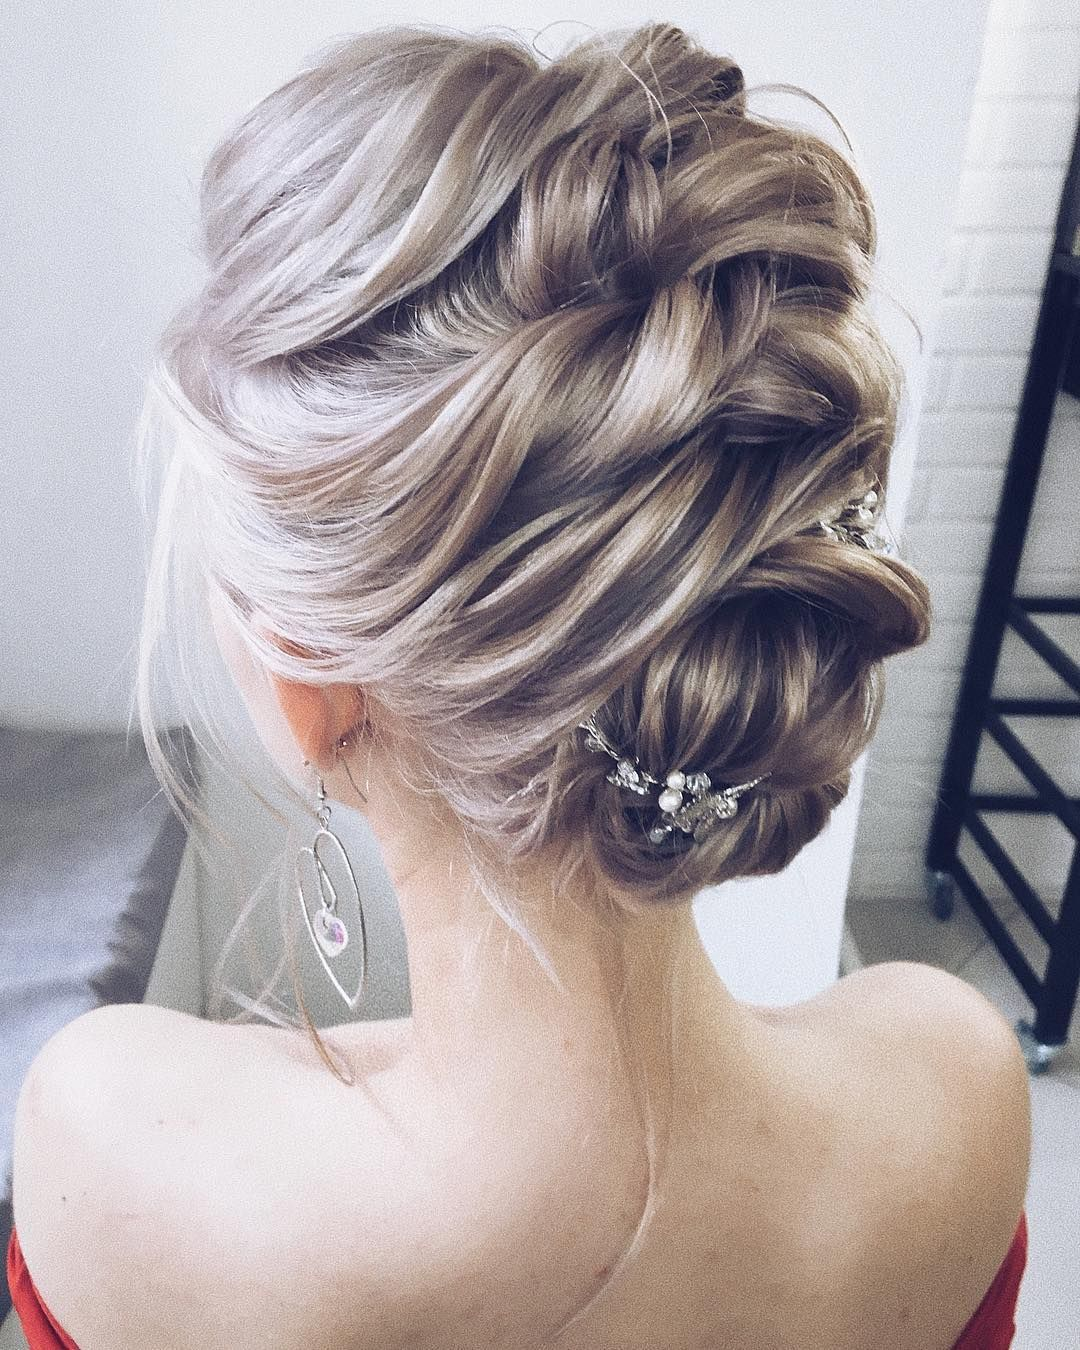 51 Romantic Wedding Hairstyles: The Most Romantic Bridal Half Up Wedding Hairstyles